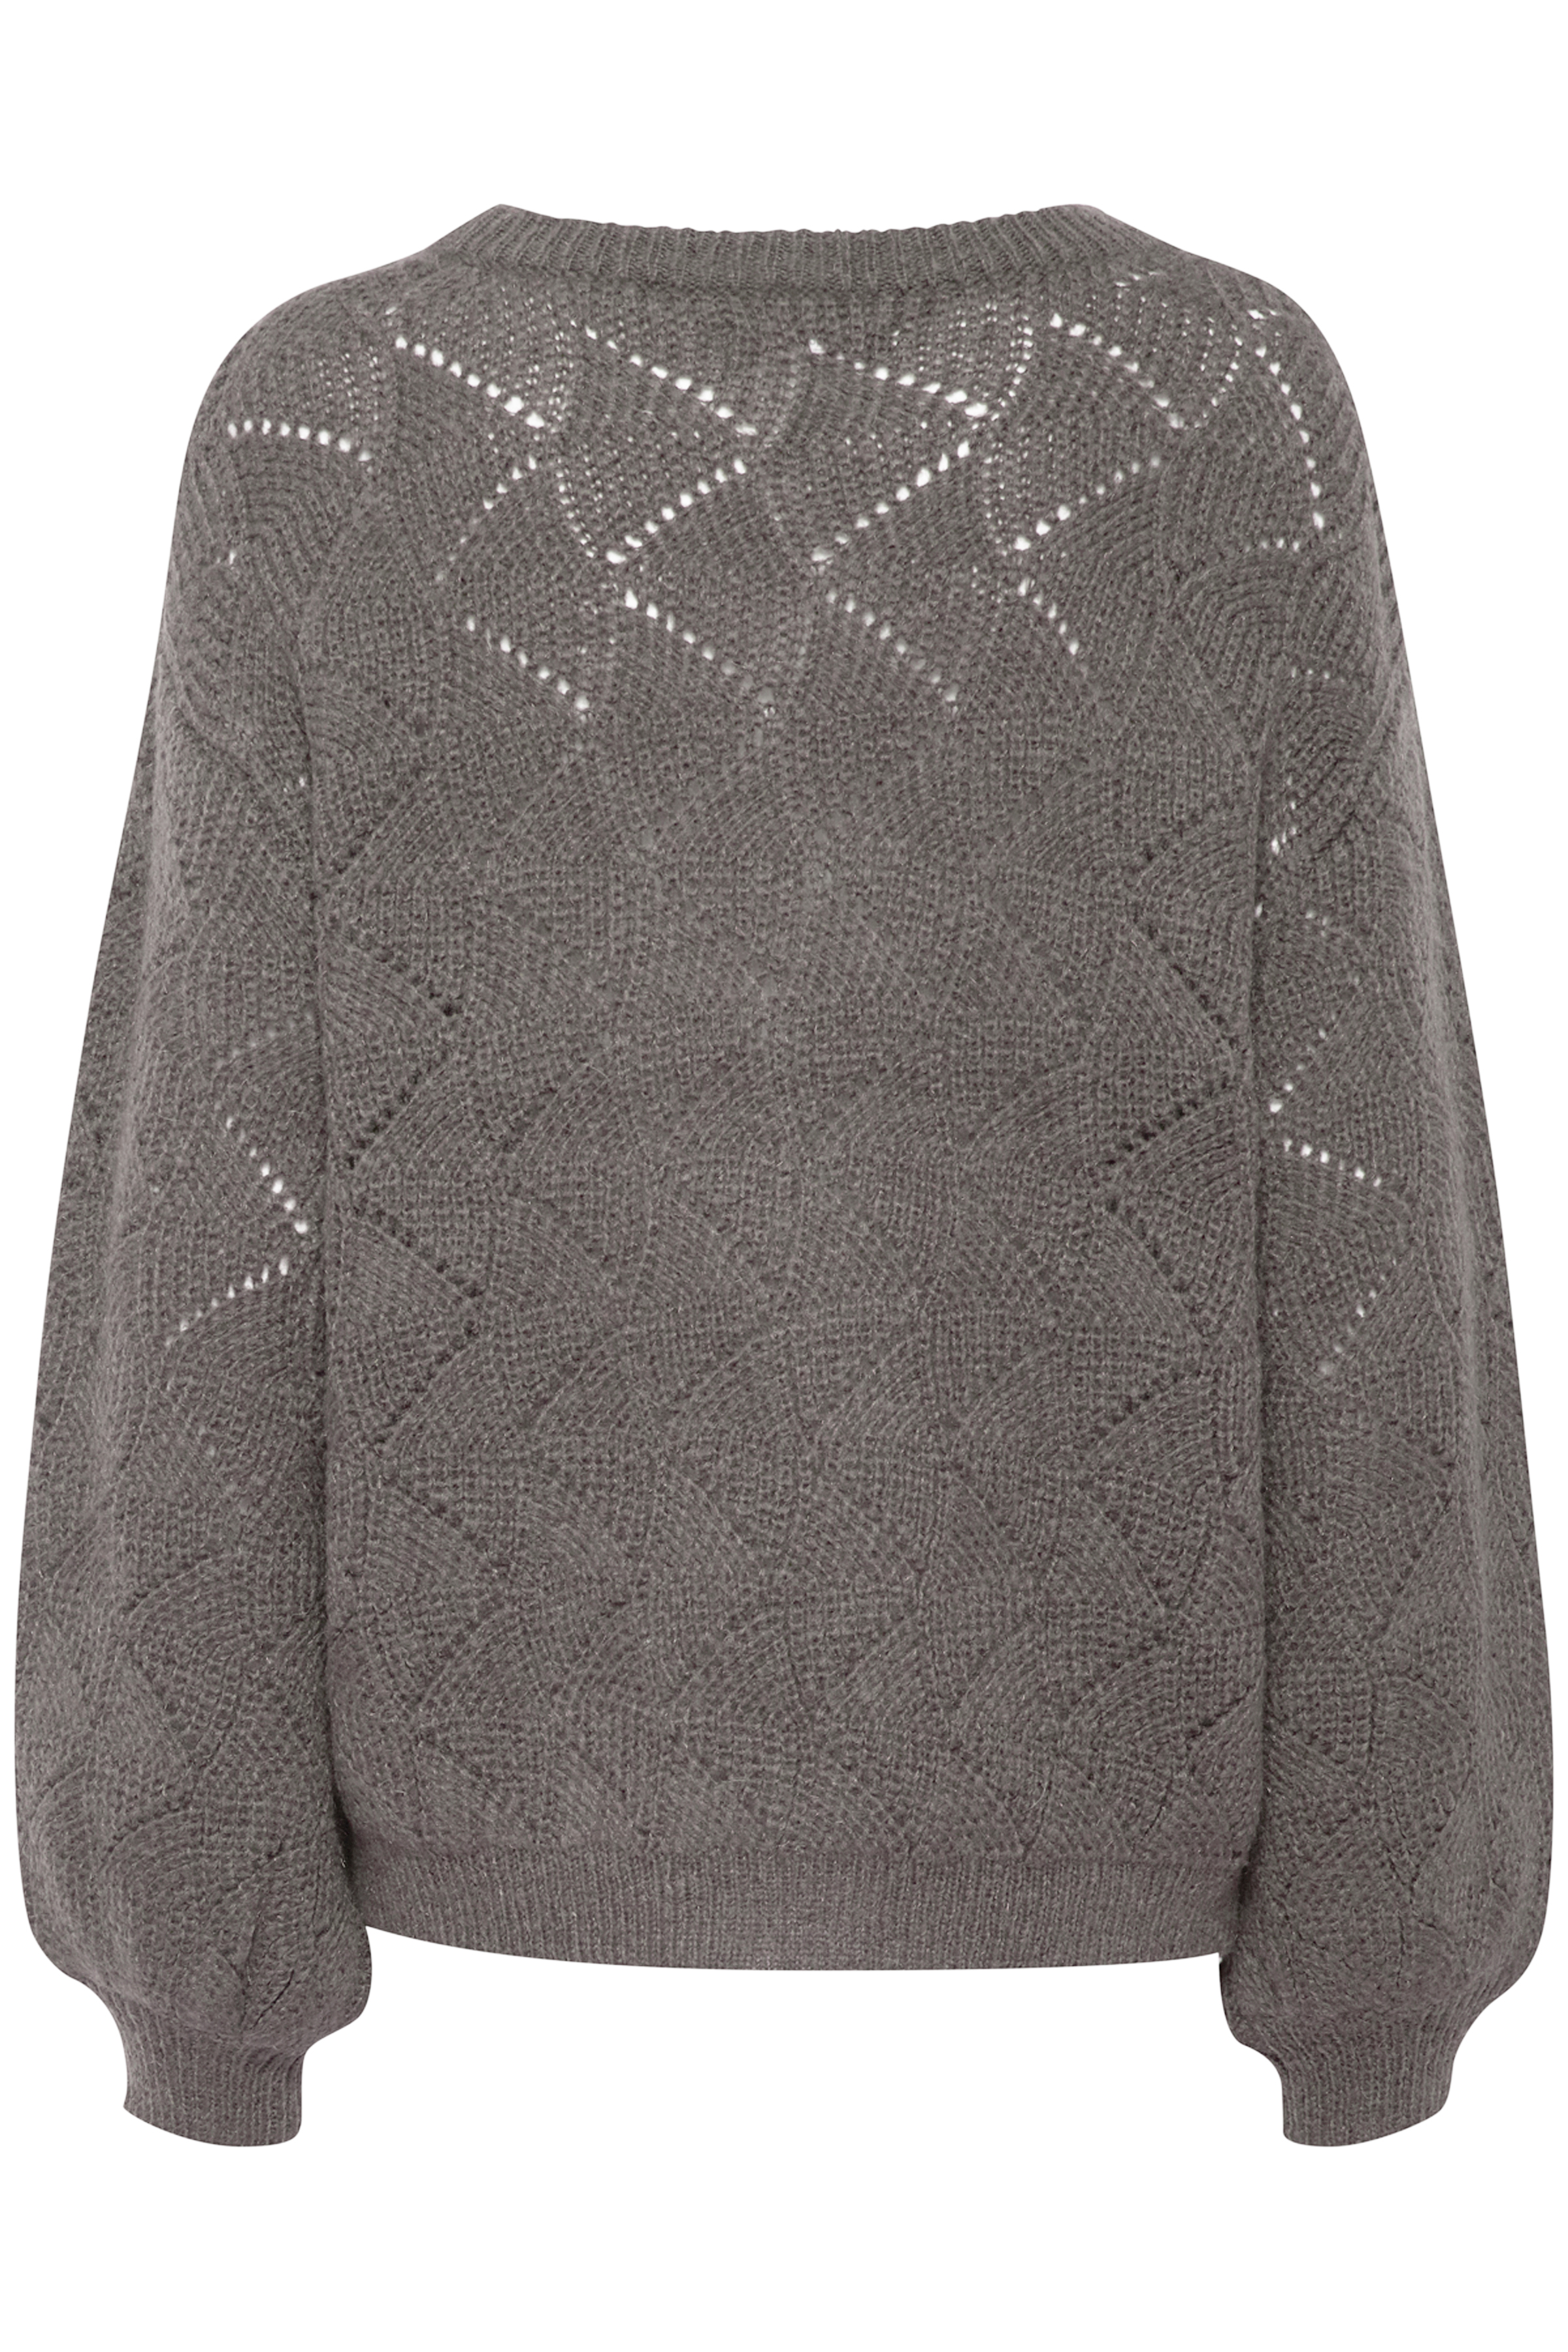 Med. Grey Mel. Knitted pullover from b.young – Buy Med. Grey Mel. Knitted pullover from size XS-XXL here